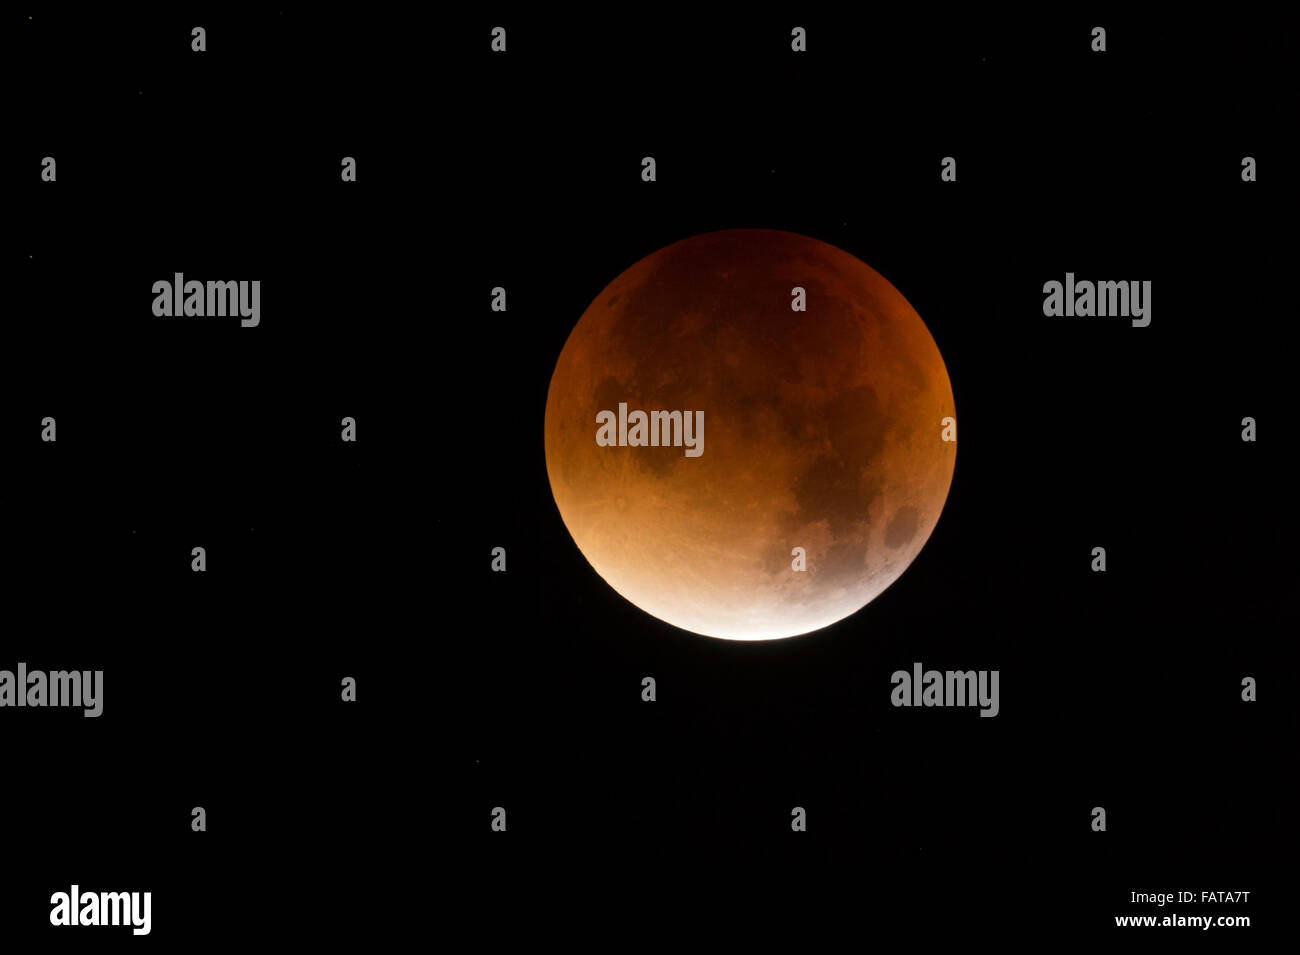 Lunar Eclipse, Red supermoon, Blood moon / Blutmond, 28th September 2015. Stock Photo